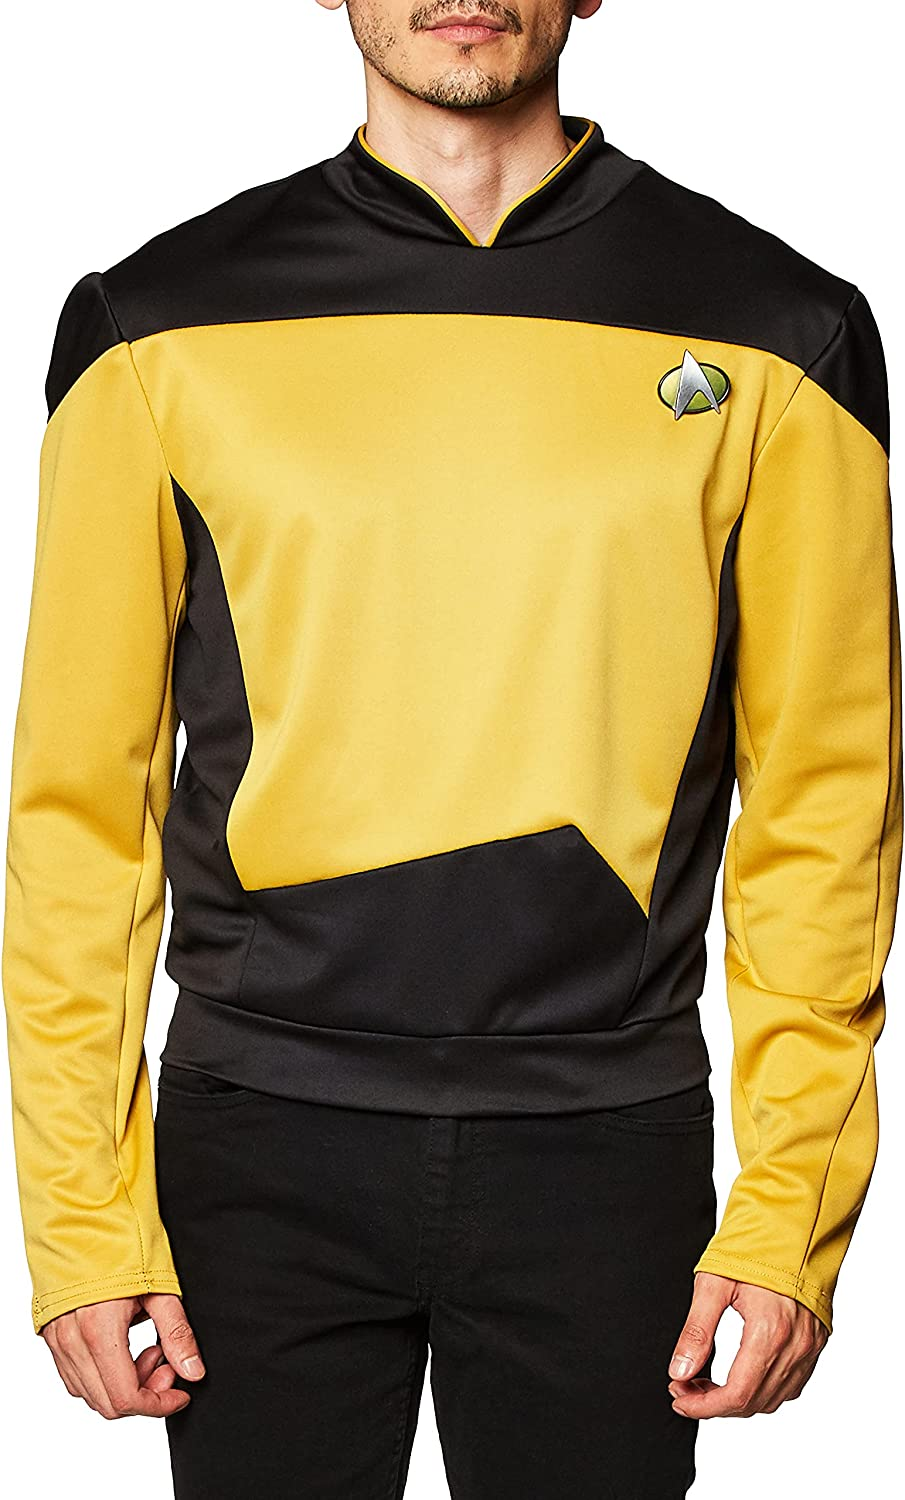 Large-scale sale Rubie's Max 56% OFF Star Trek The Next Generation Lt. Data Deluxe Commander